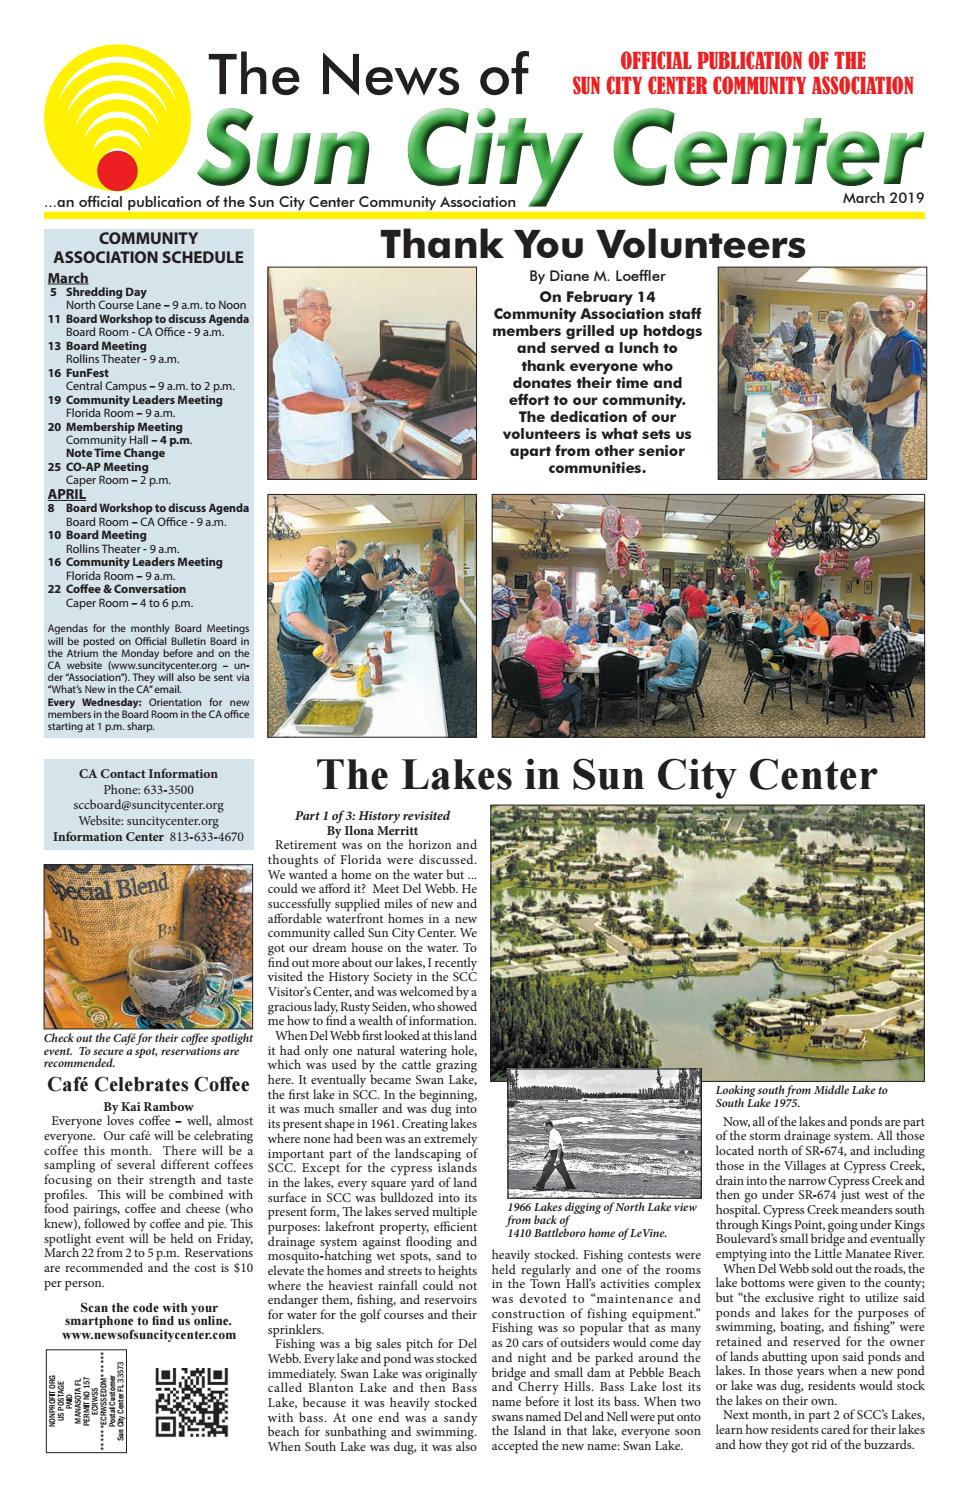 News of Sun City Center March 2019 by The News of Sun City Center